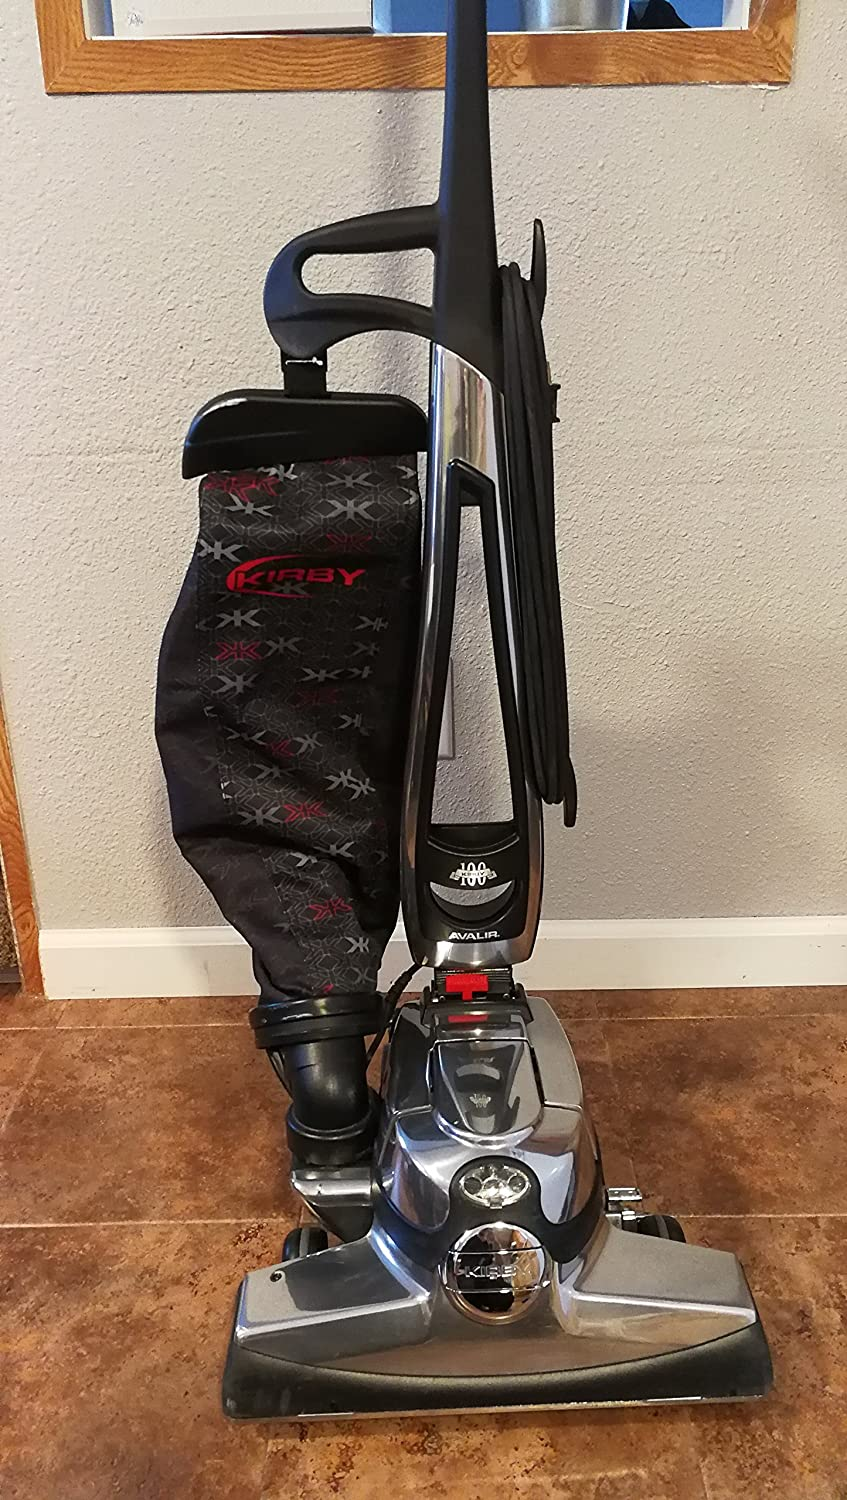 Kirby Avalir G10d Vacuum Cleaner With Tool Attachments Shampooer Warranty Amazon In Home Kitchen